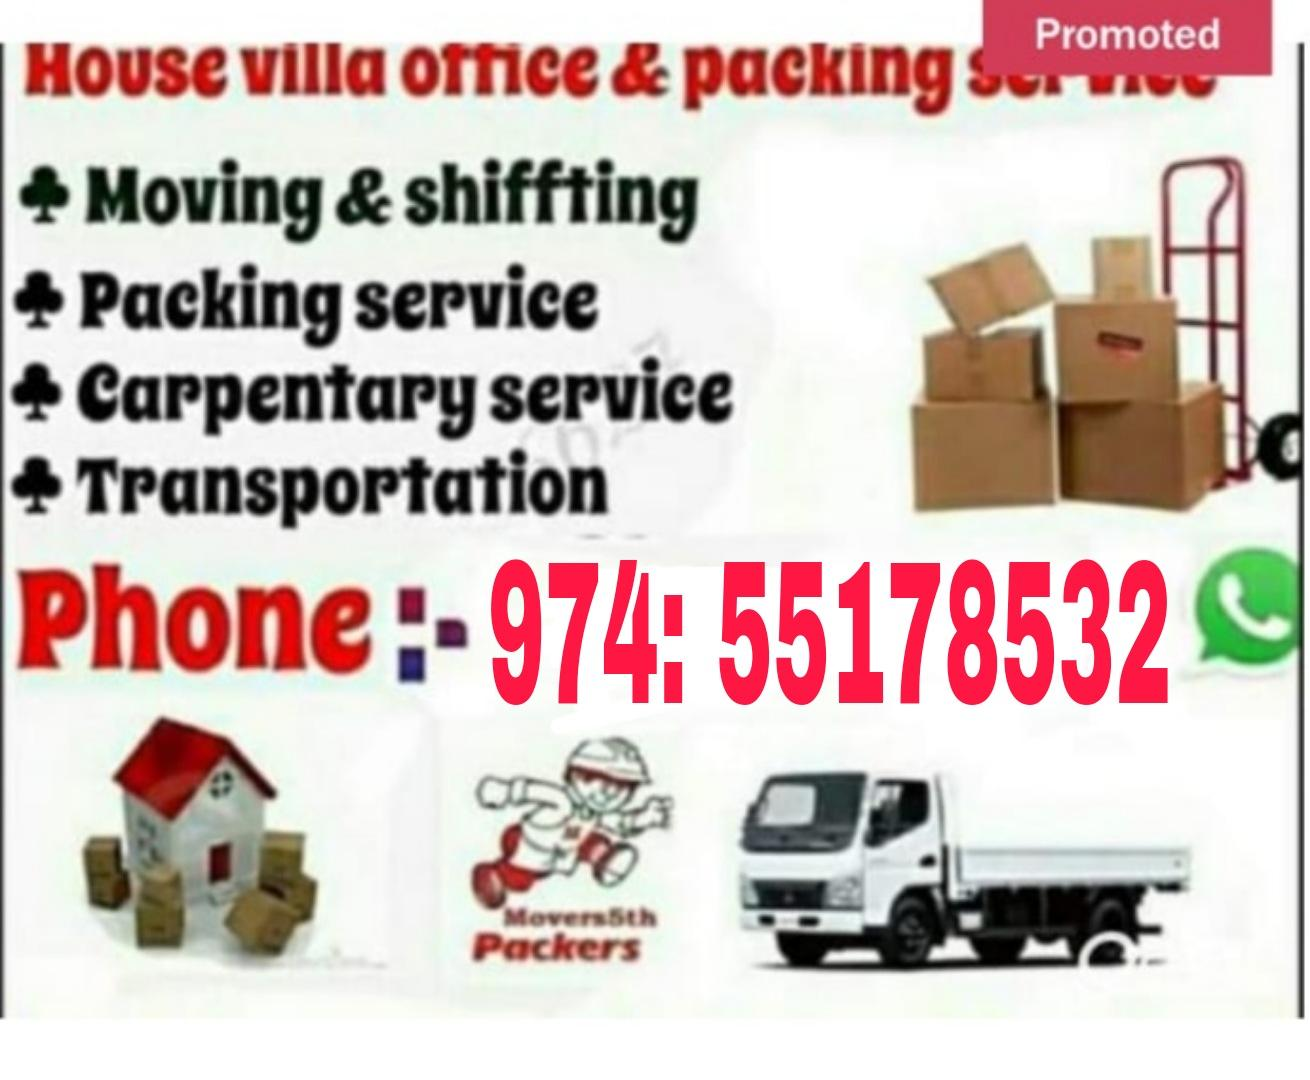 All type of shifting and moving. Please call:-974: